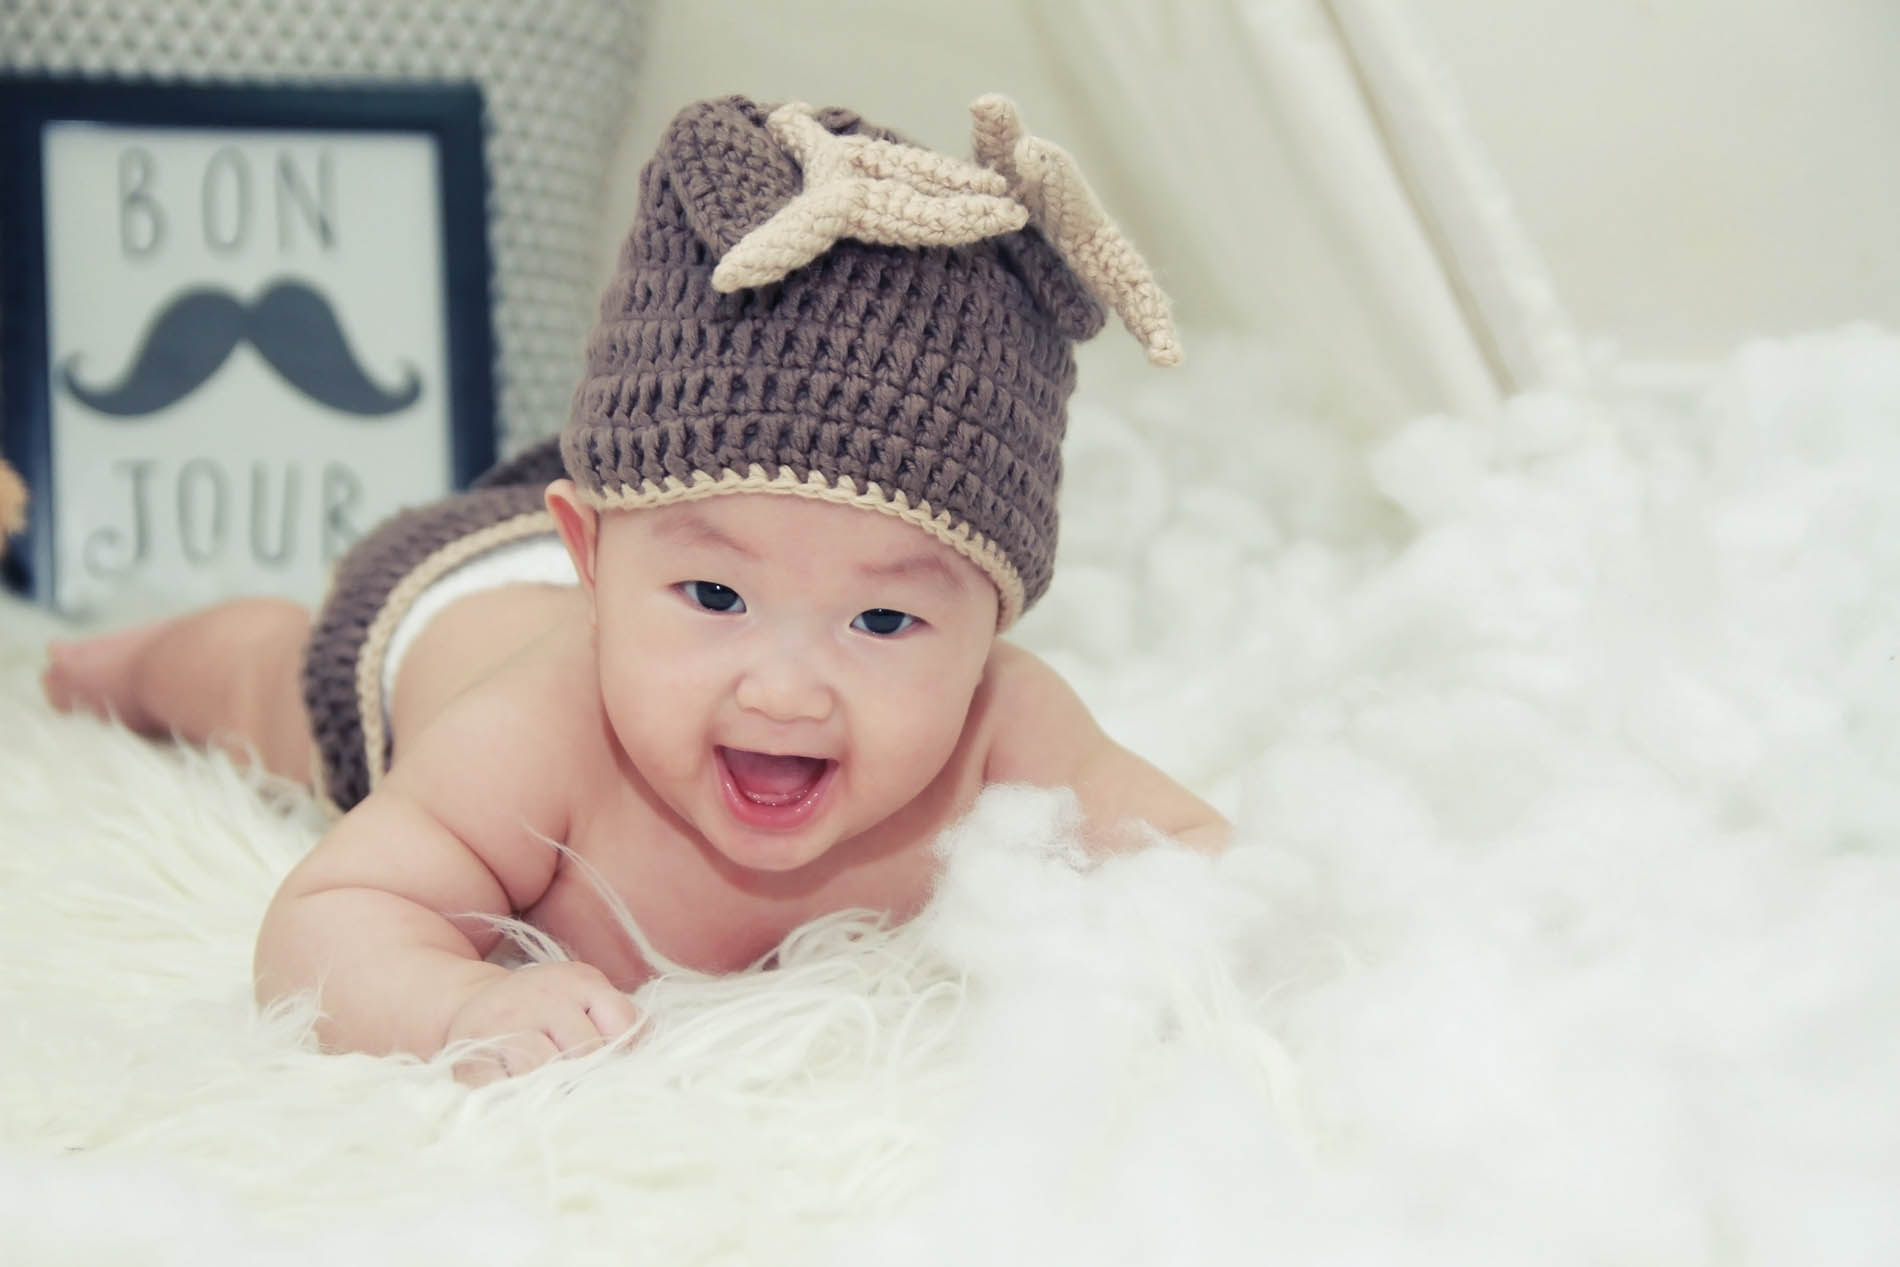 All n knots - Adorable custom crocheted pieces for Babies and Toddlers